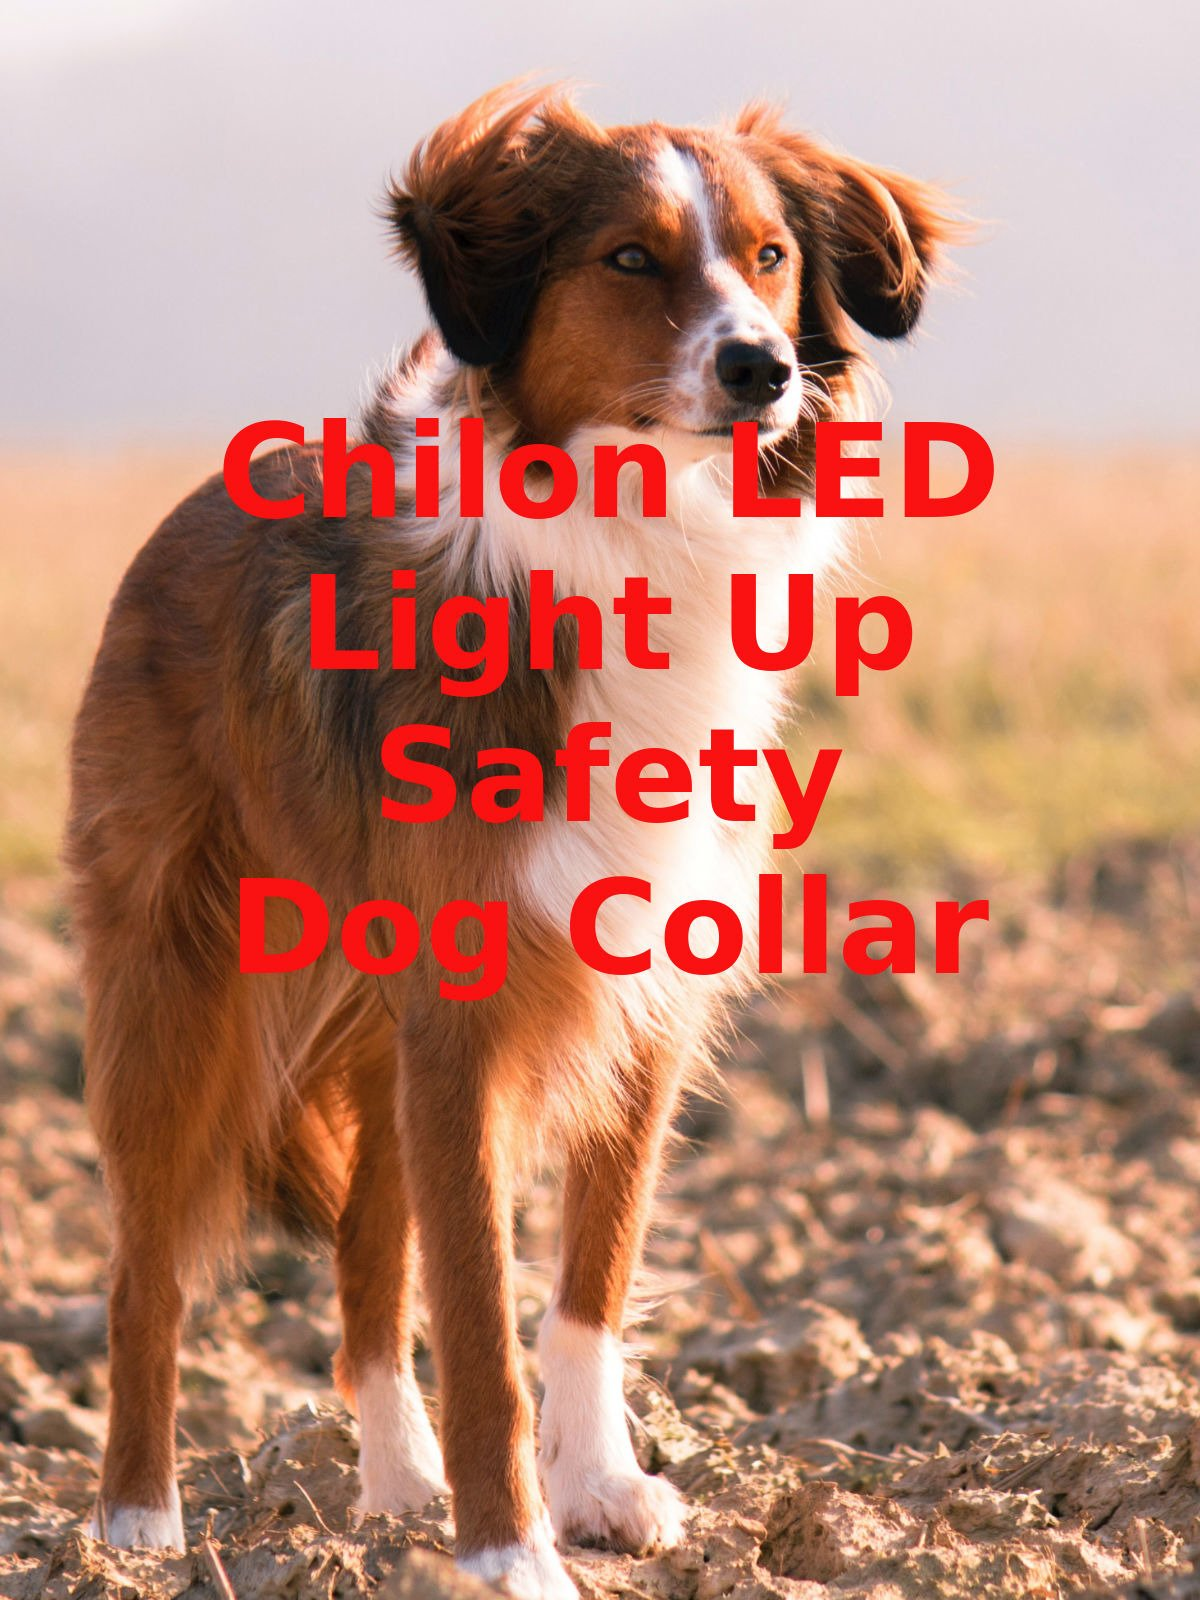 Review: Chilon LED Light Up Safety Dog Collar on Amazon Prime Video UK